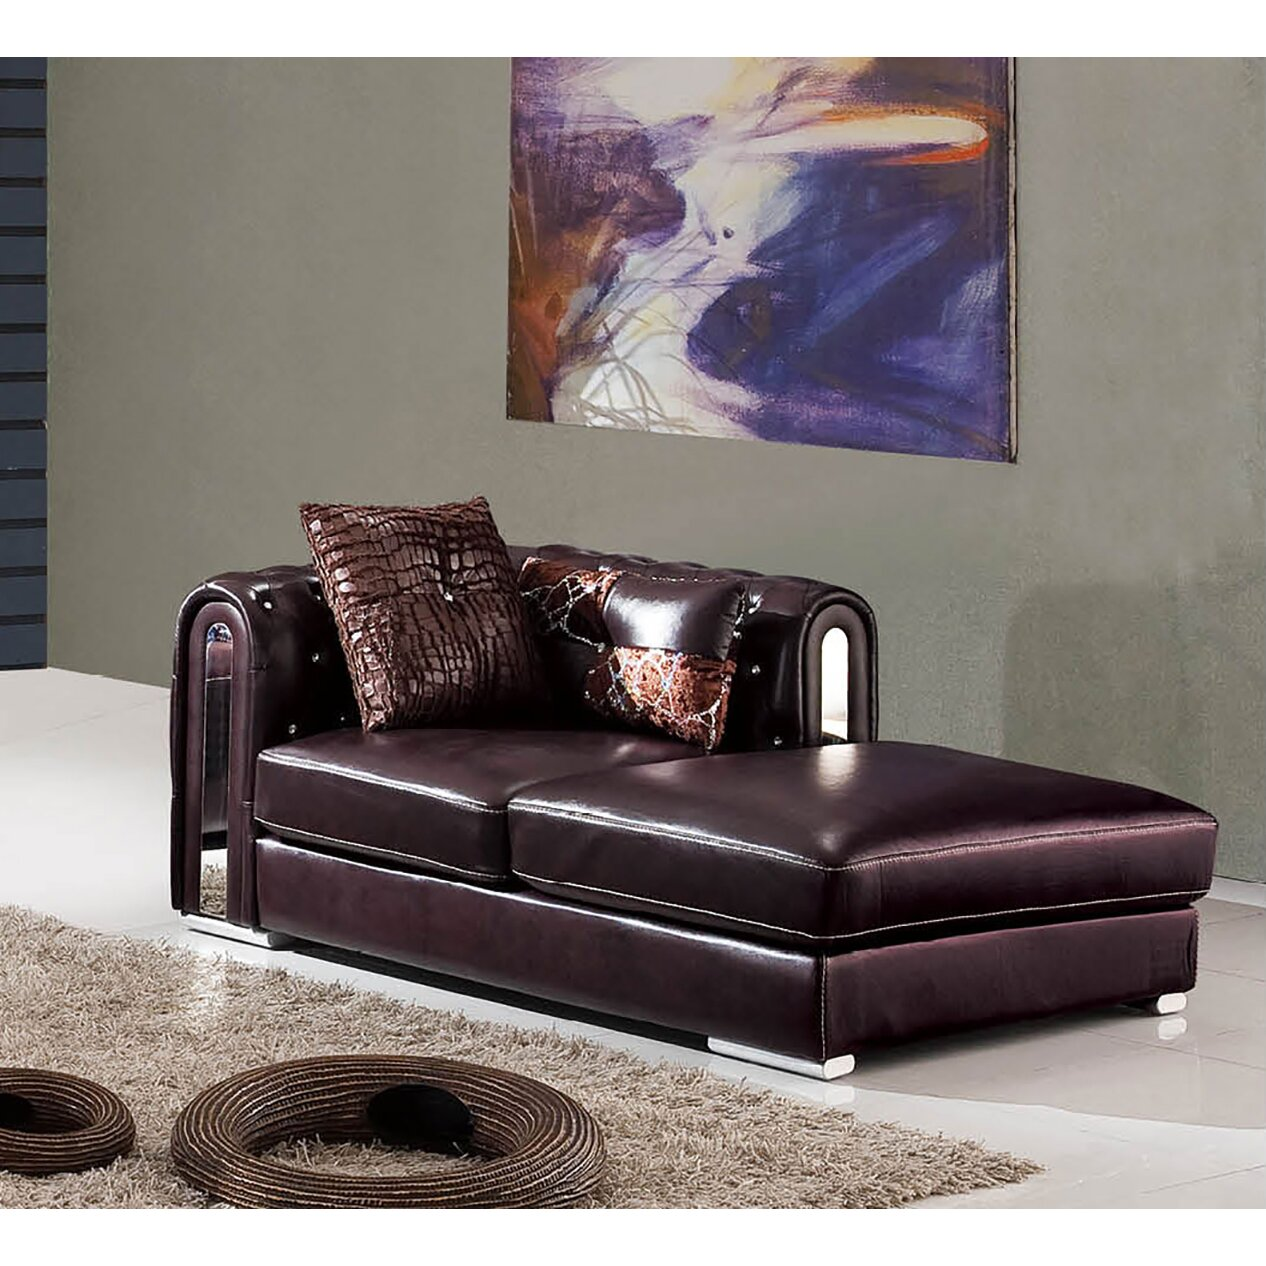 Nocidesign chaise lounge wayfair for Burgundy chaise lounge